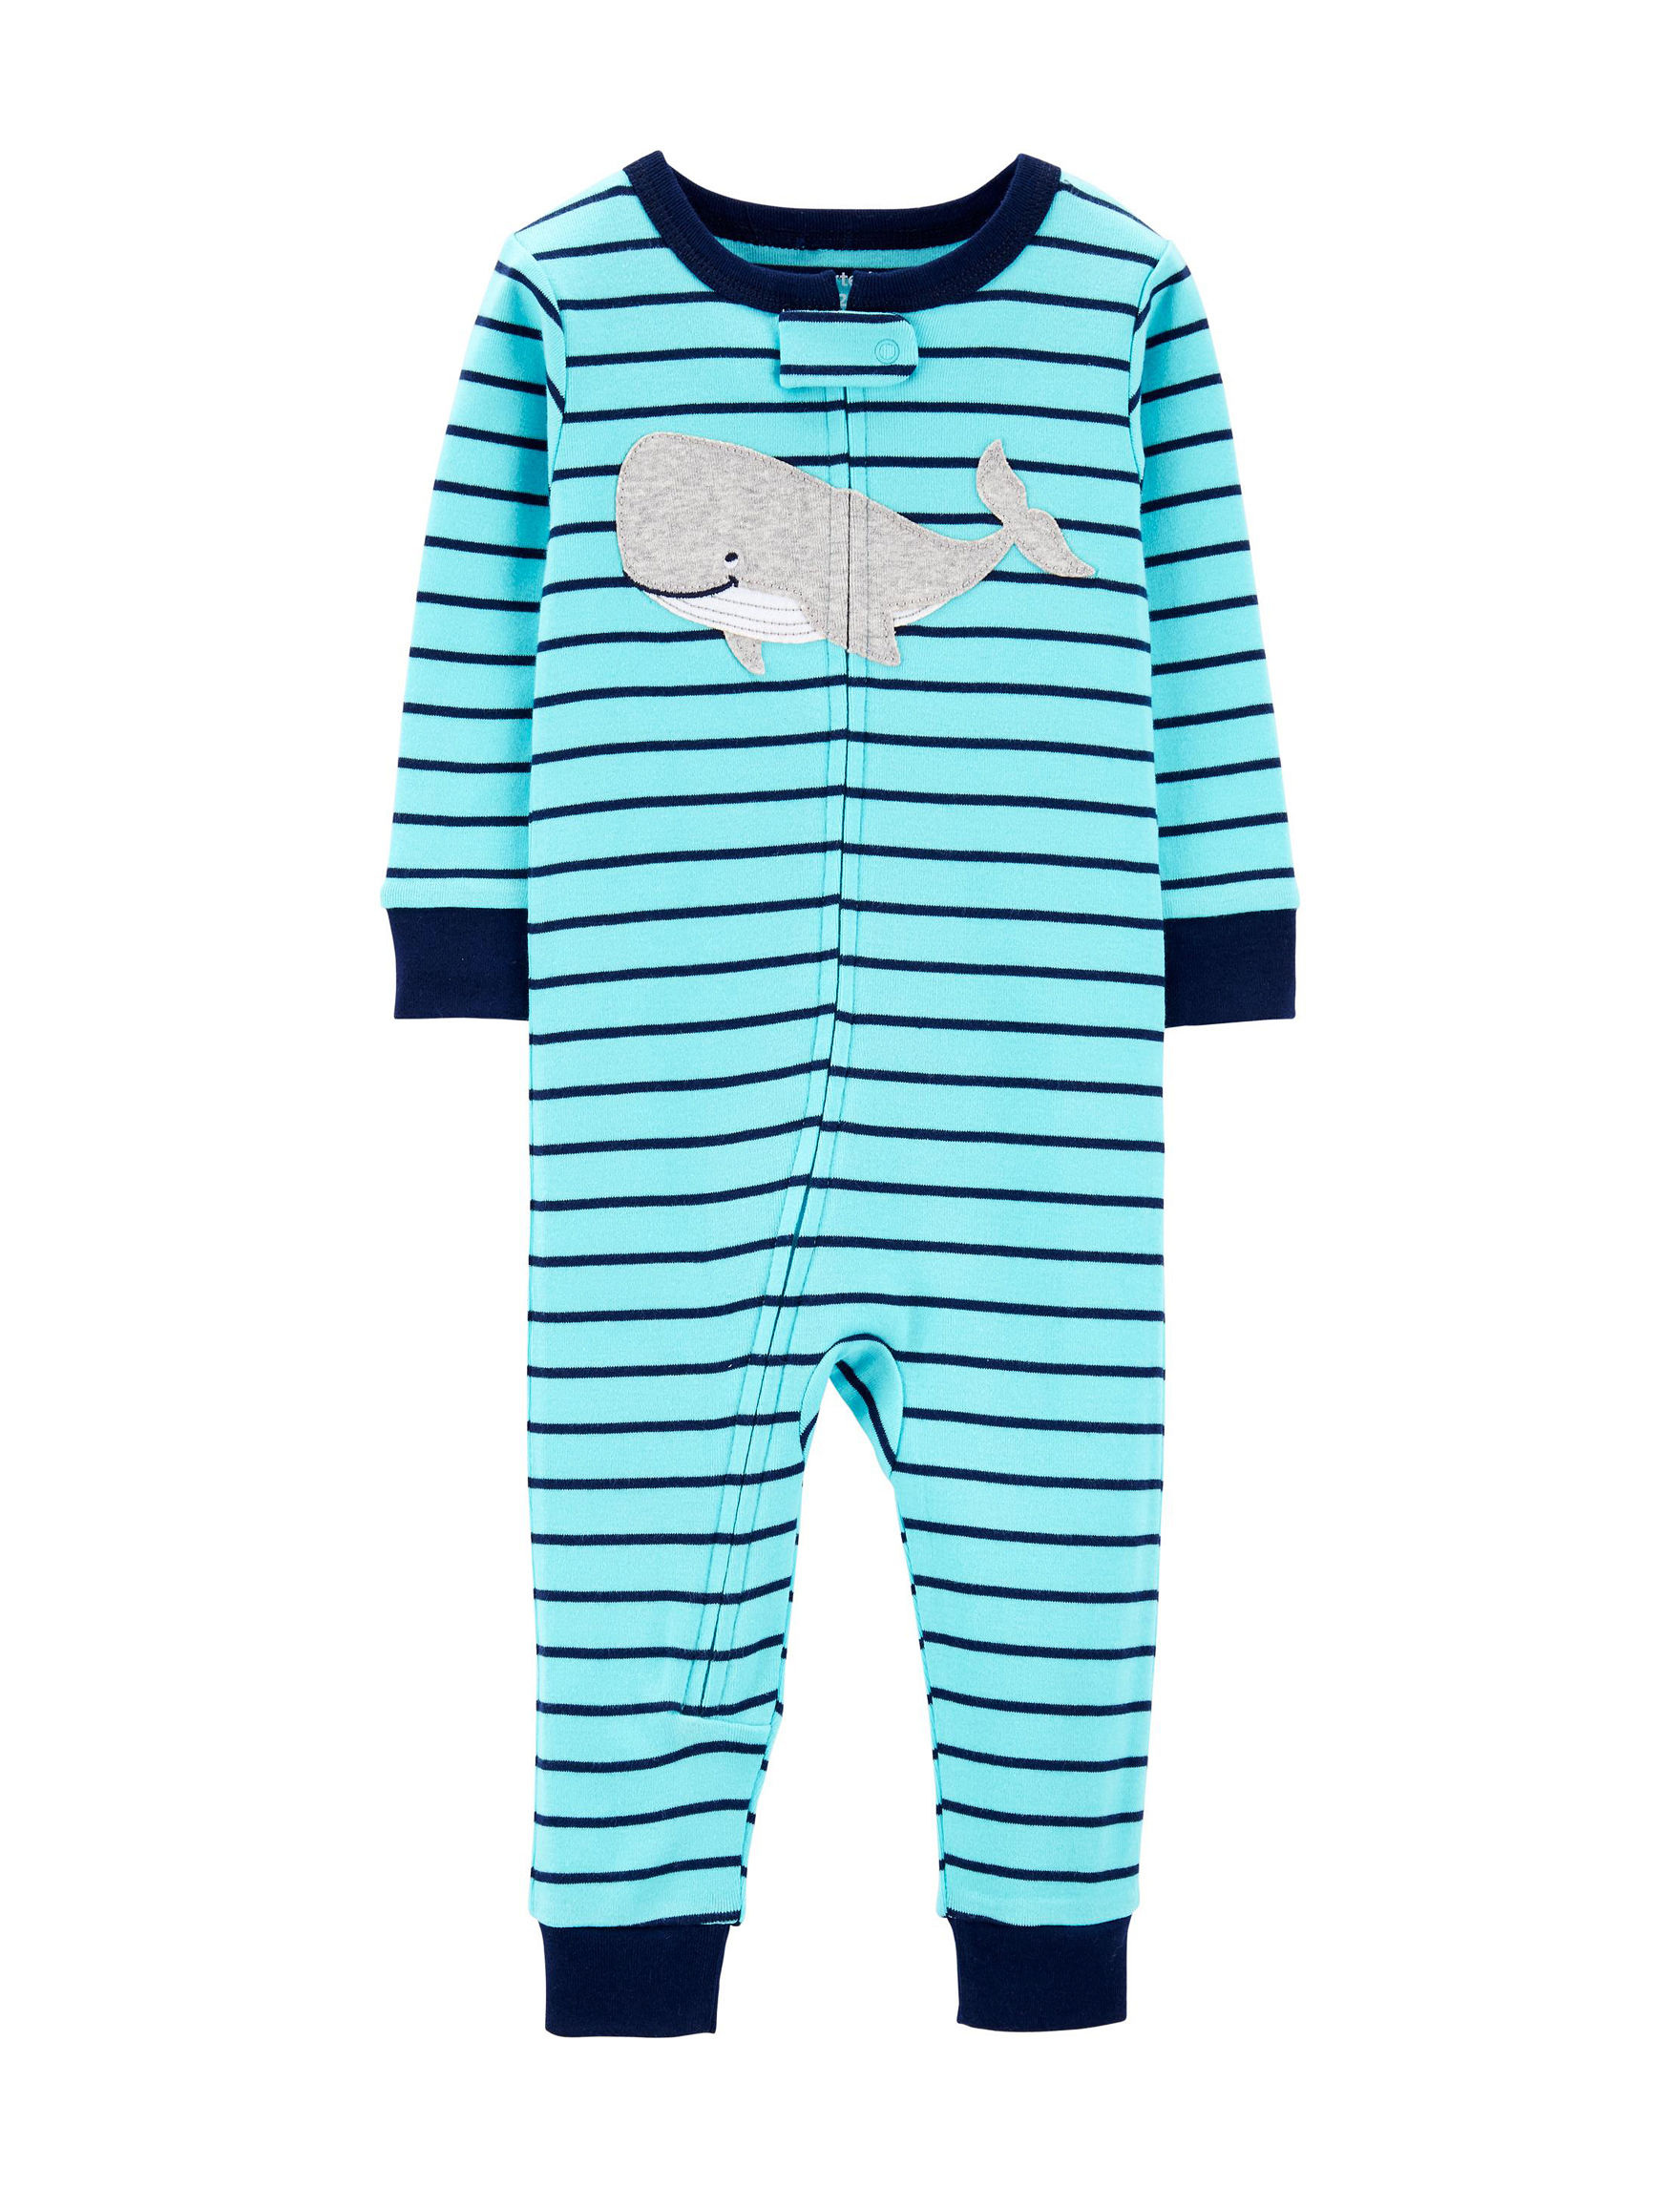 Carter's Blue Stripe